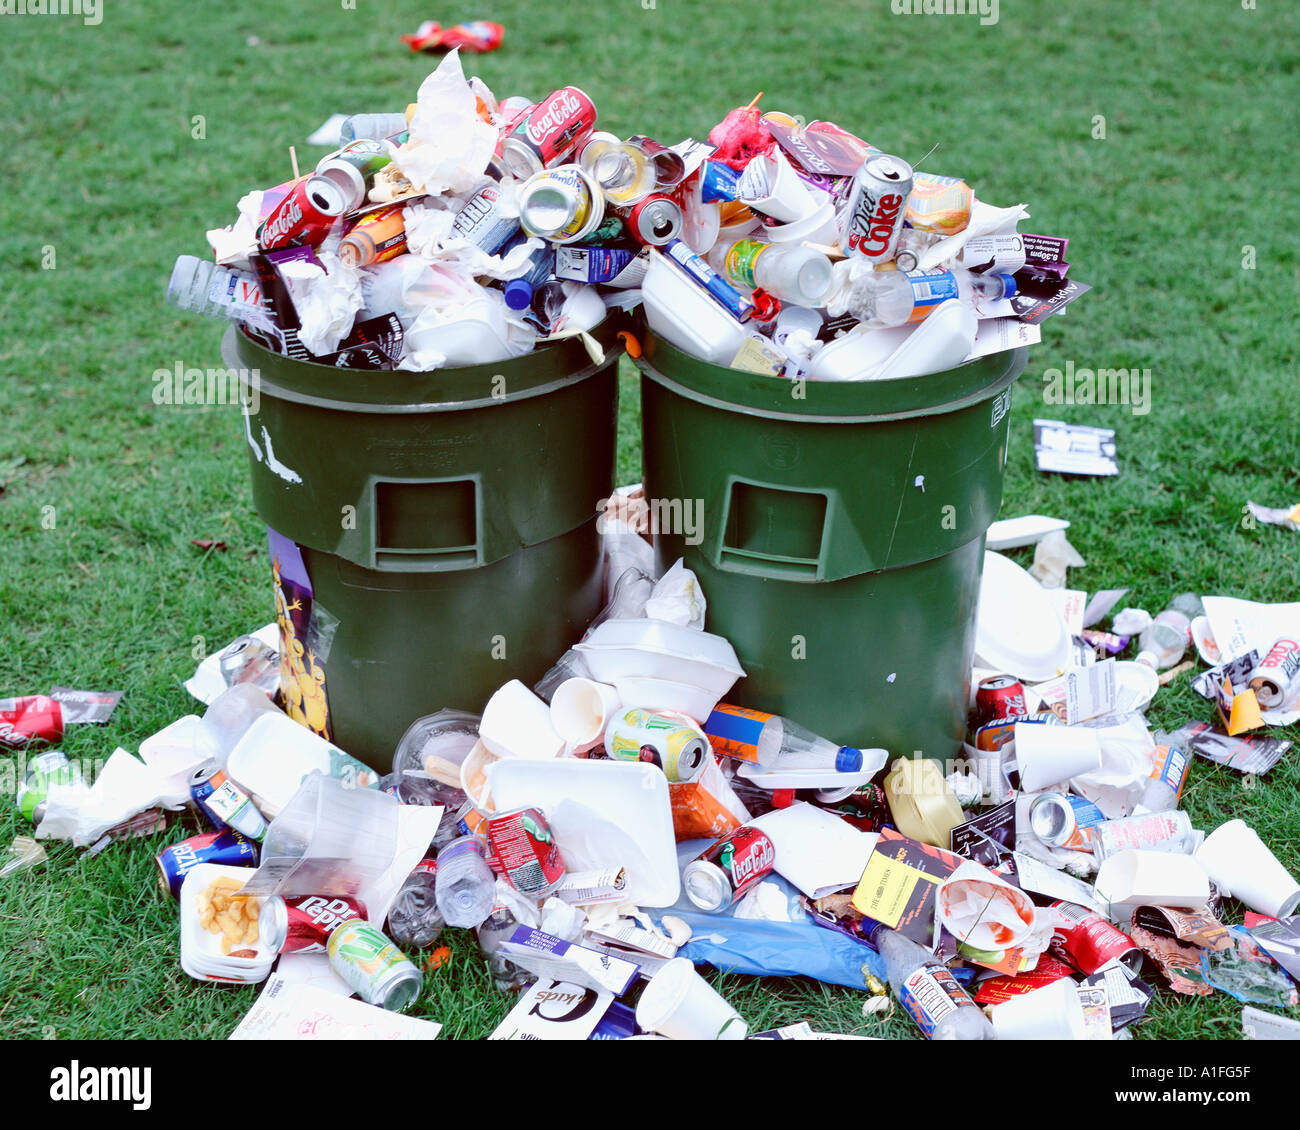 two-garbage-cans-A1FG5F.jpg